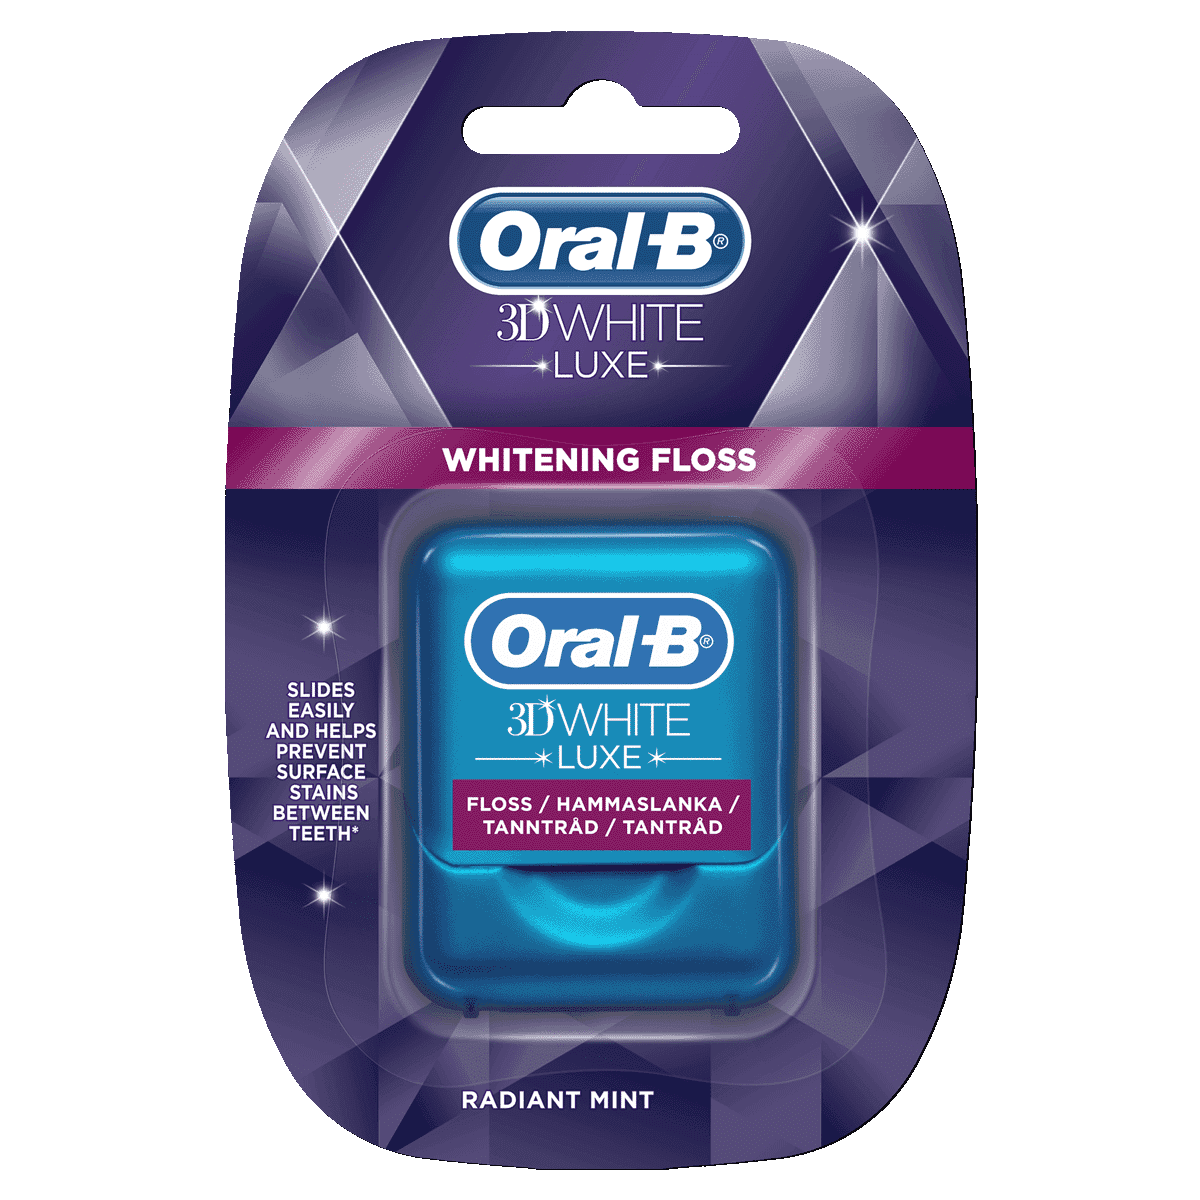 Oral-B 3D White Floss